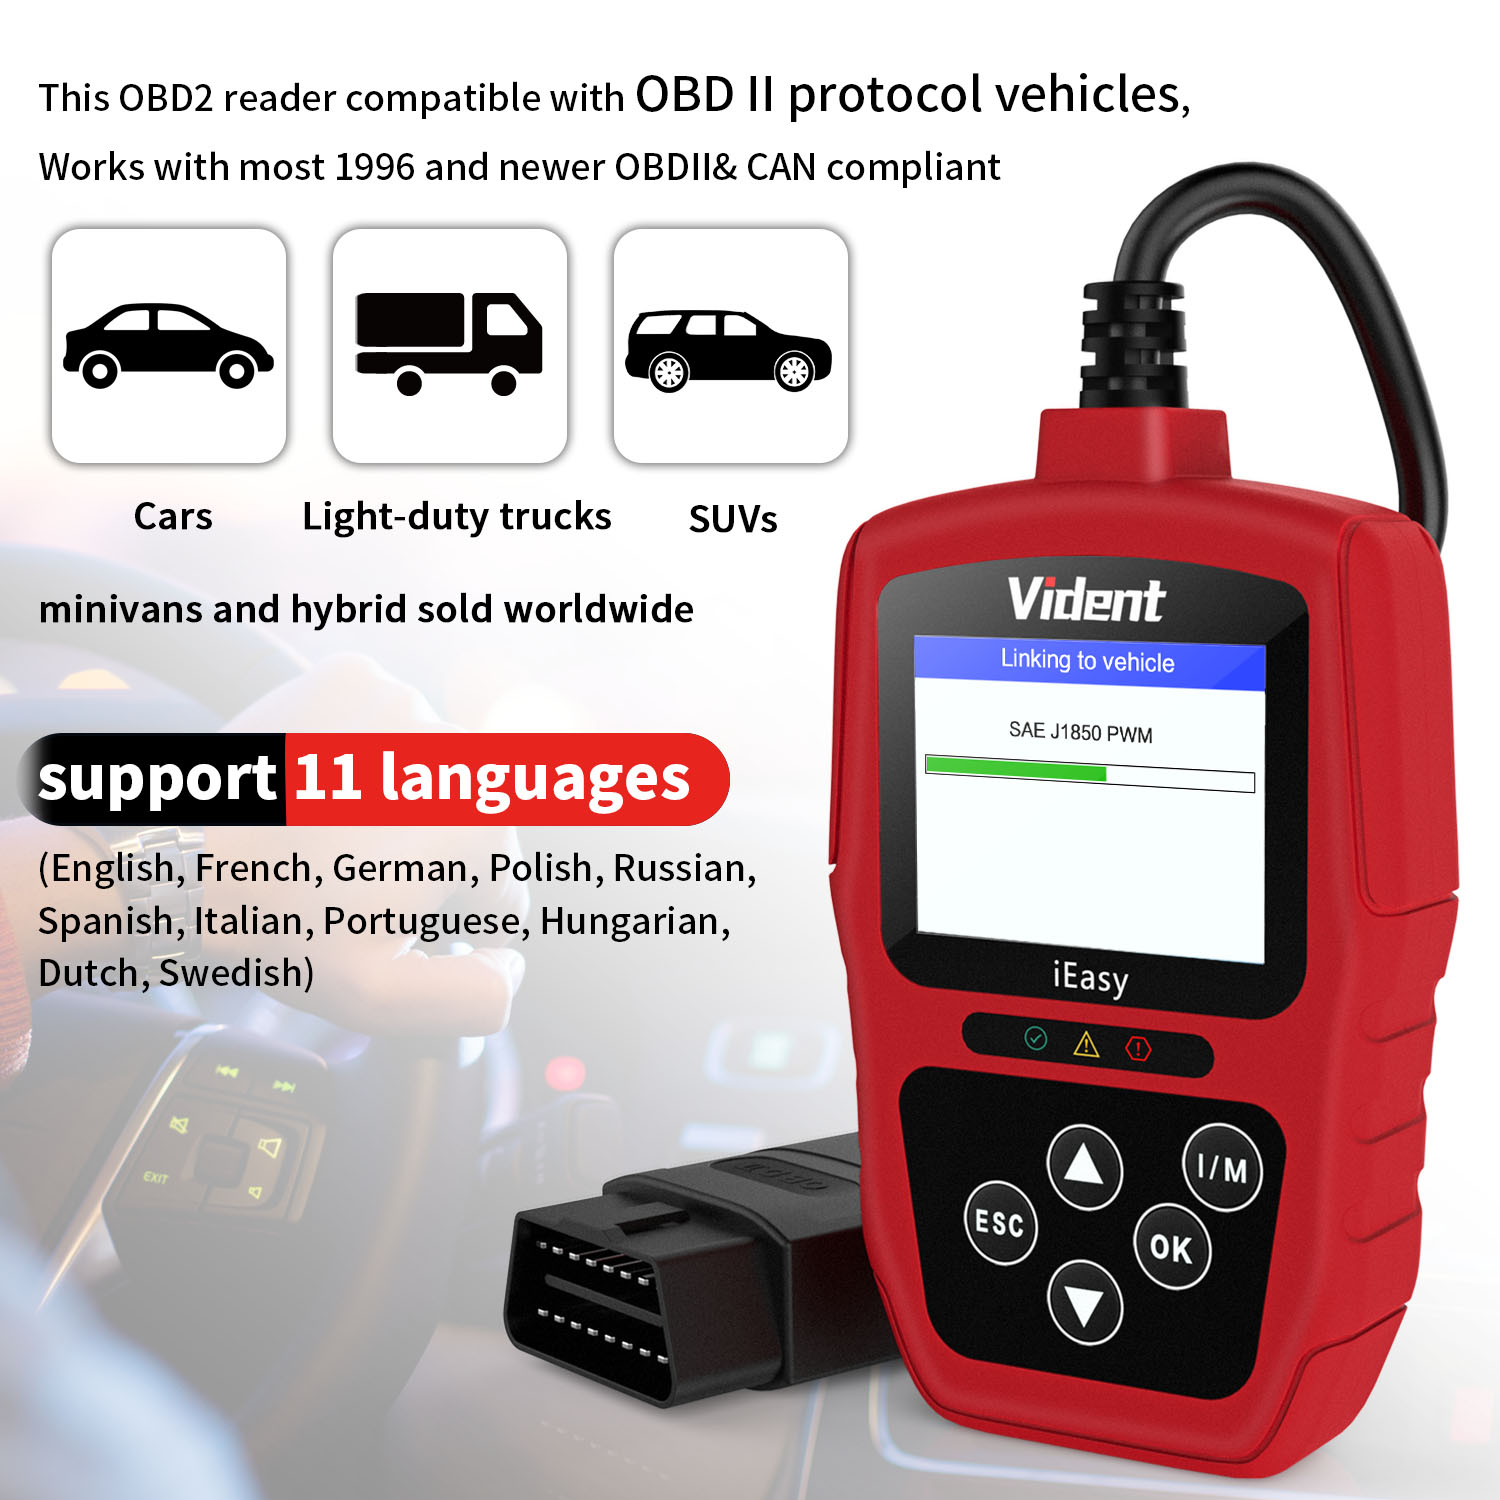 New Version VIDENT OBD2 Scanner Universal Car Diagnostic Scan Tool Enhanced iEasy300 EOBD OBDII CAN Reader with Battery Test Function Automotive Engine Fault Code Reader